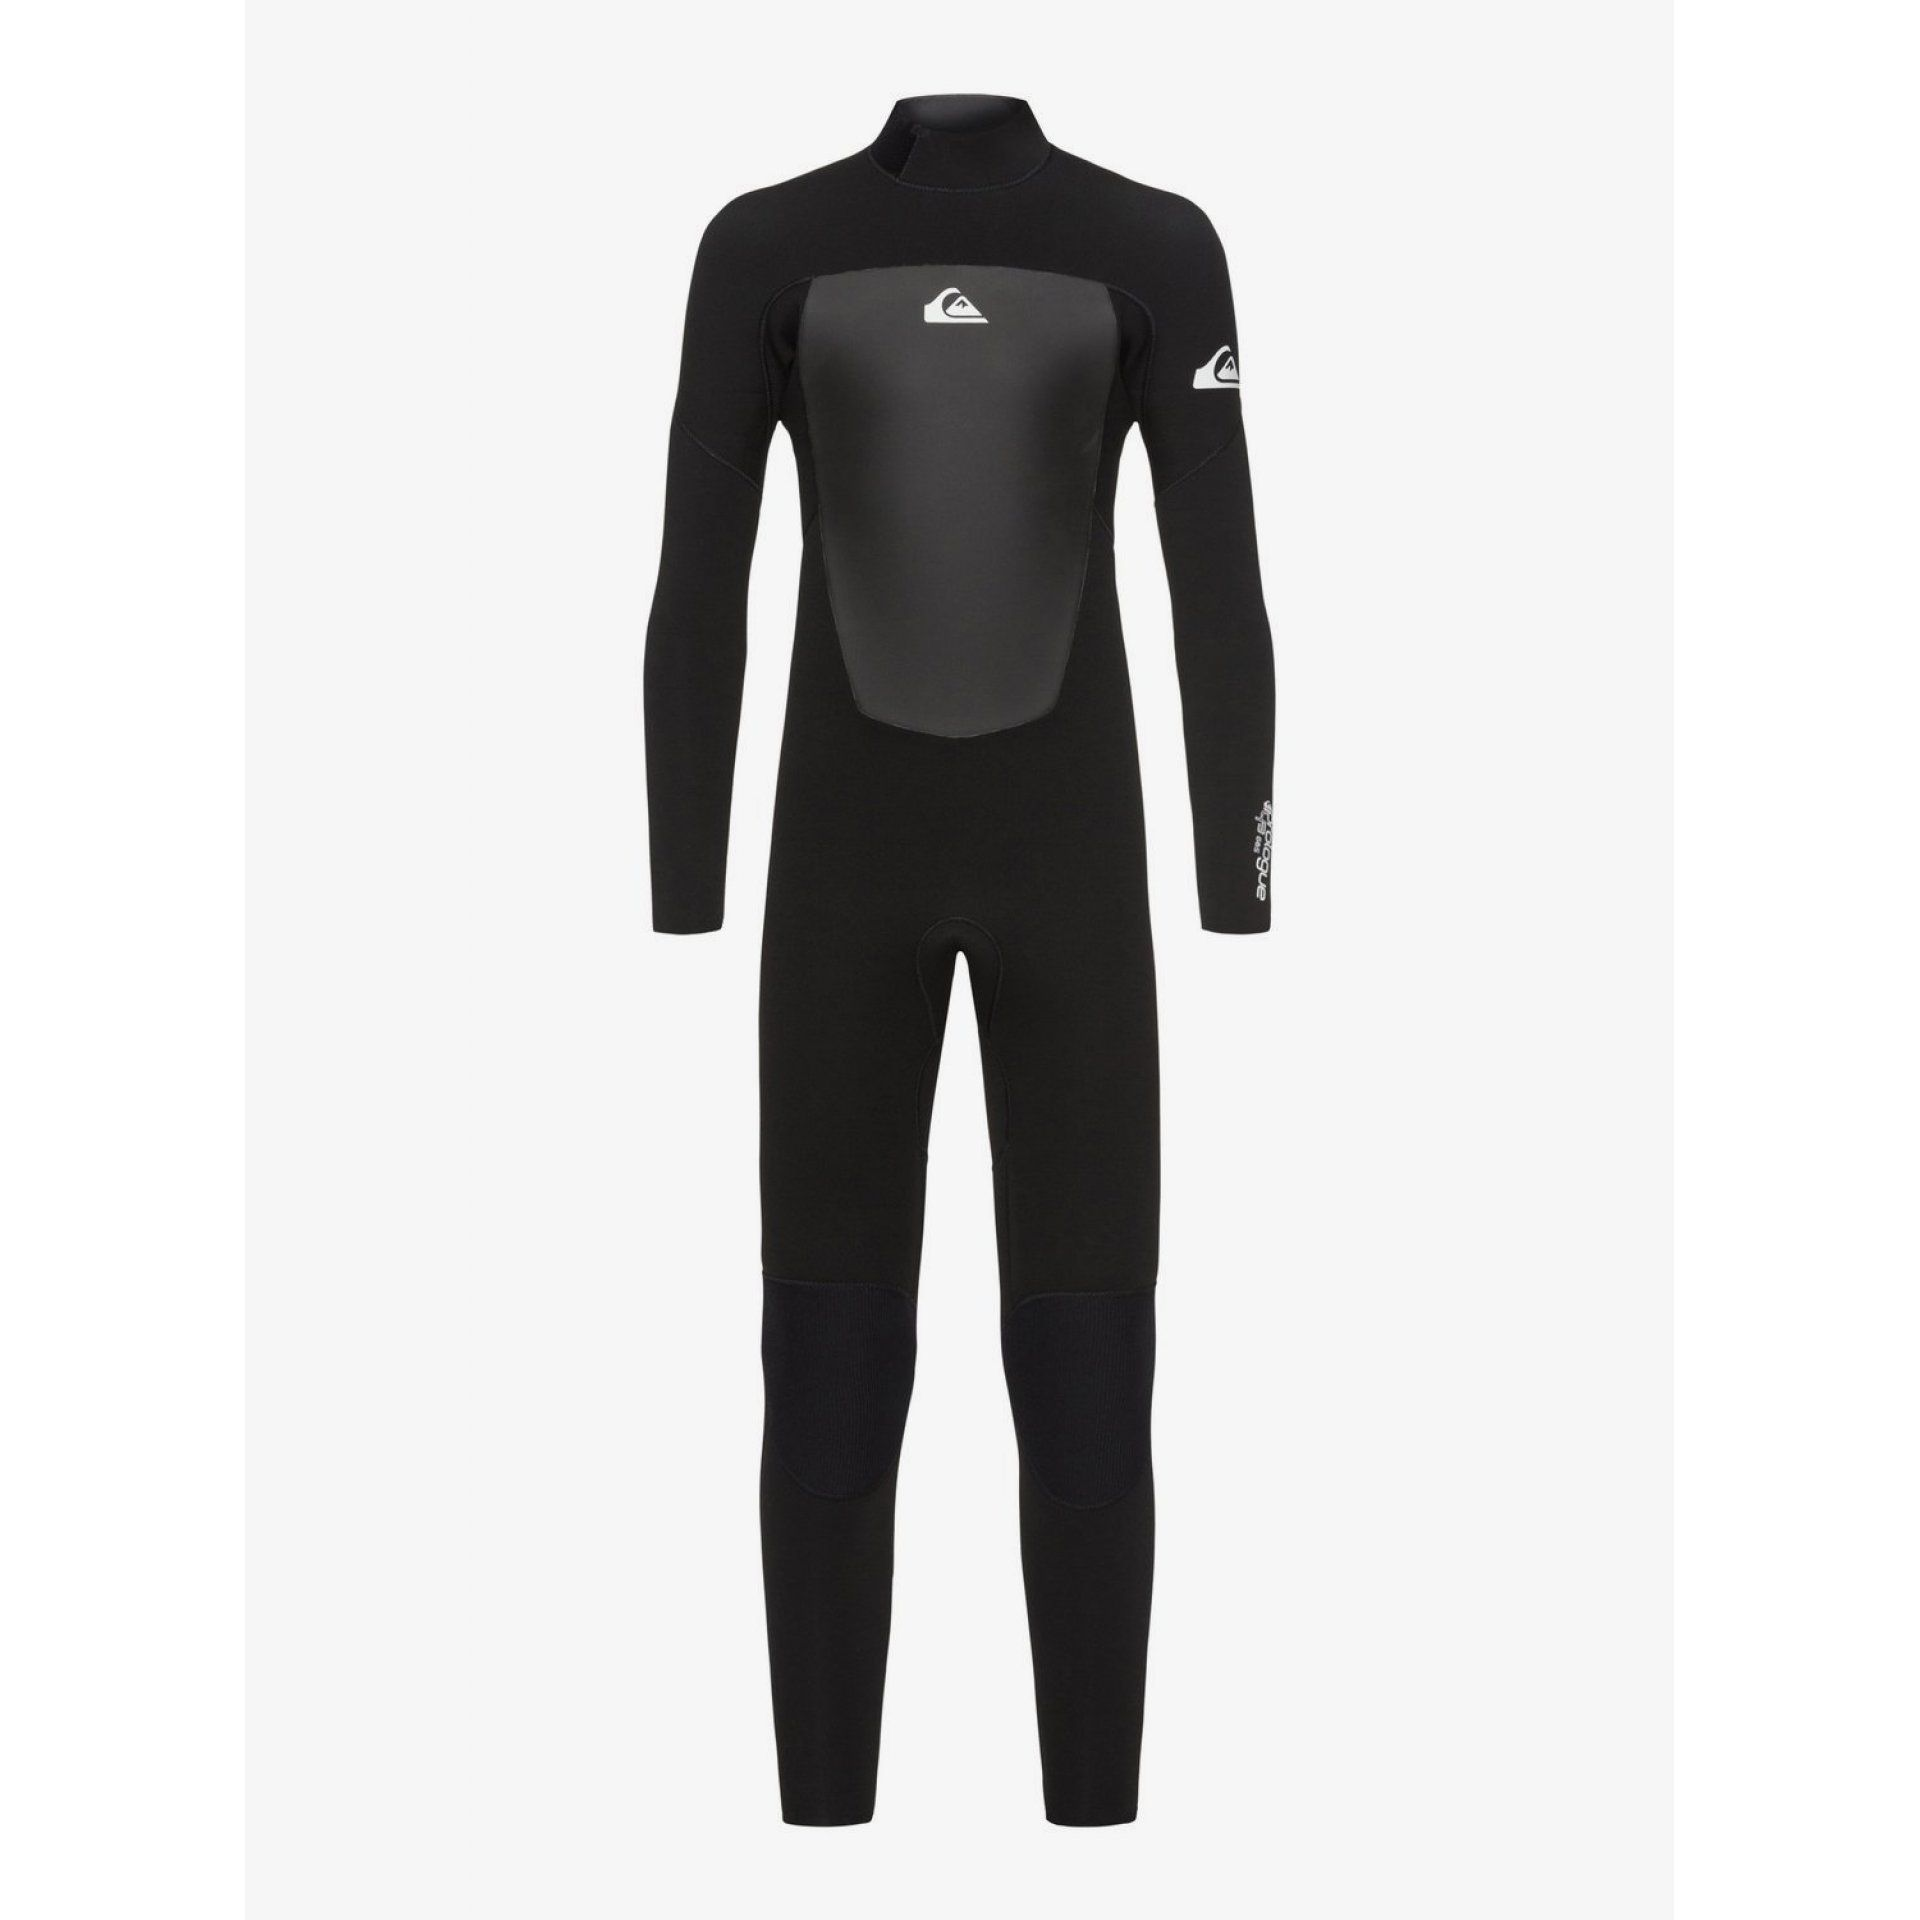 PIANKA NEOPRENOWA QUIKSILVER BOYS 8-16 4|3 PROLOGUE BZ EQBW103038 KVJ0